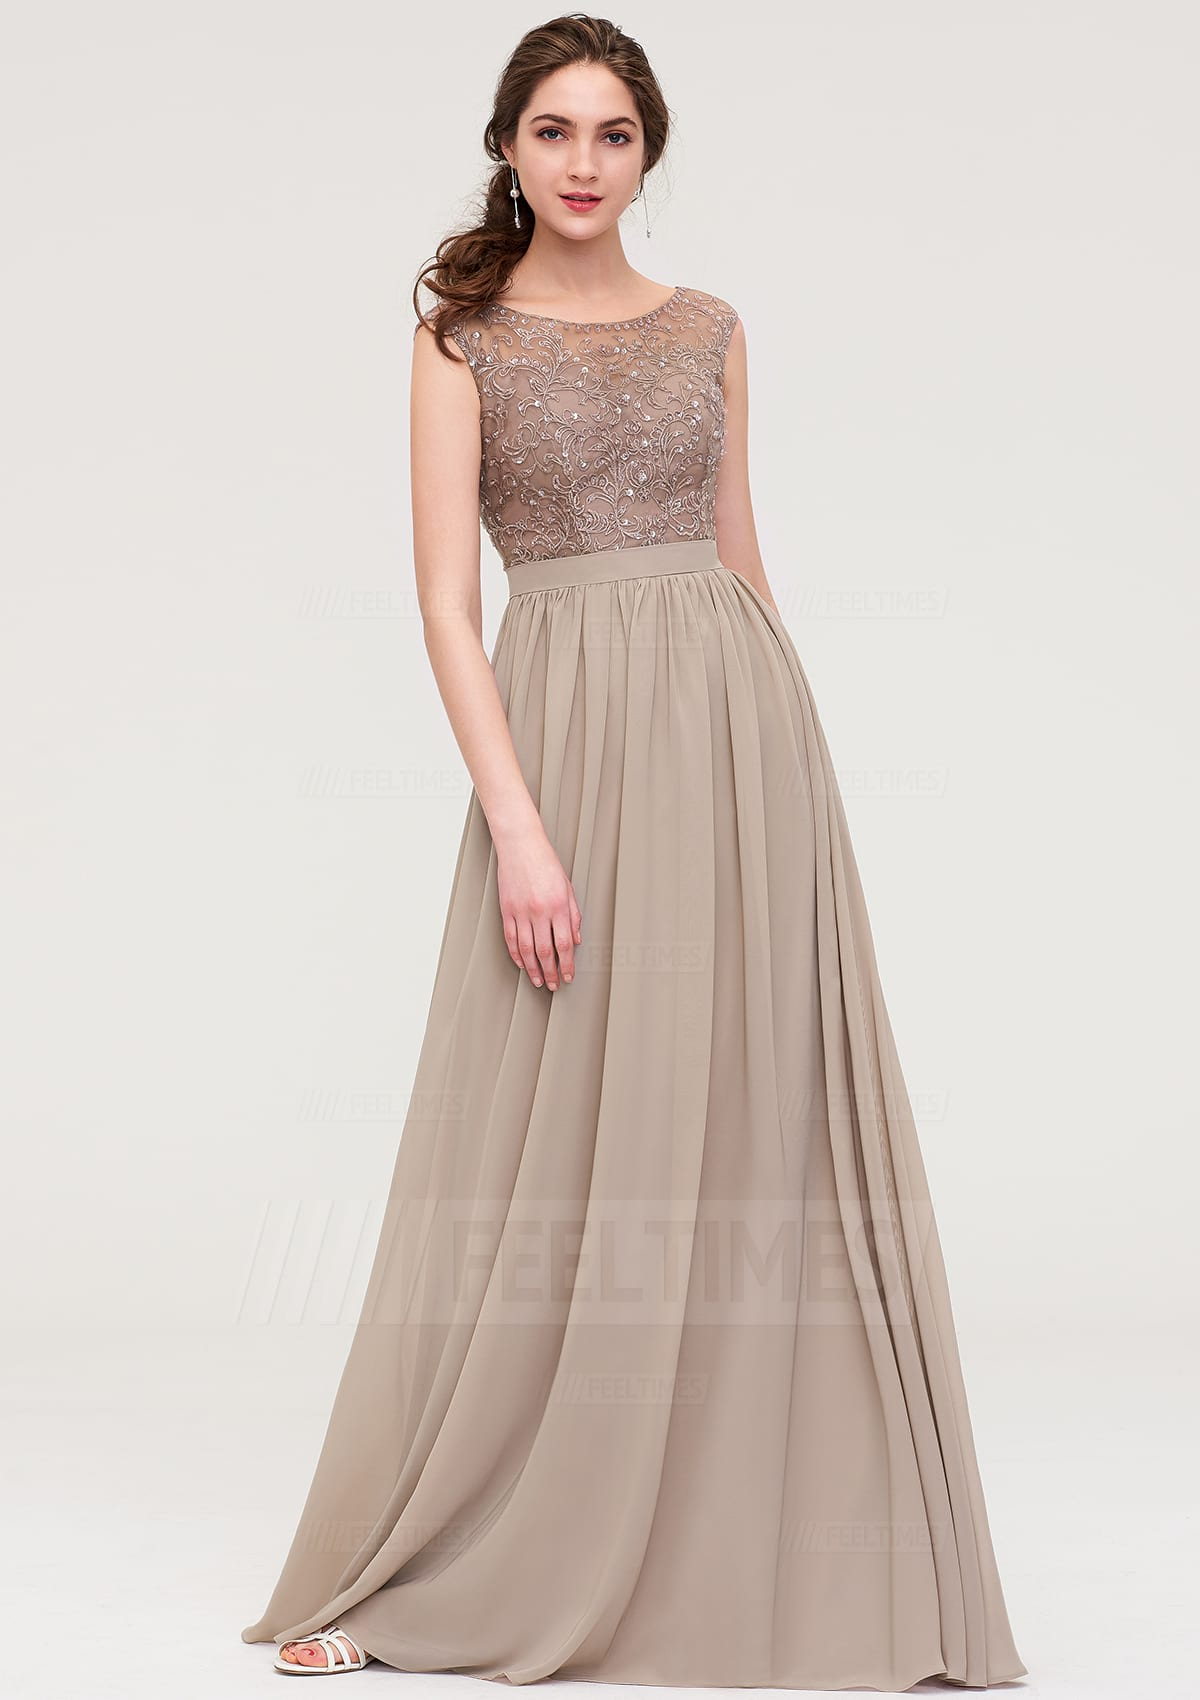 Bridesmaid Dresses and Separates